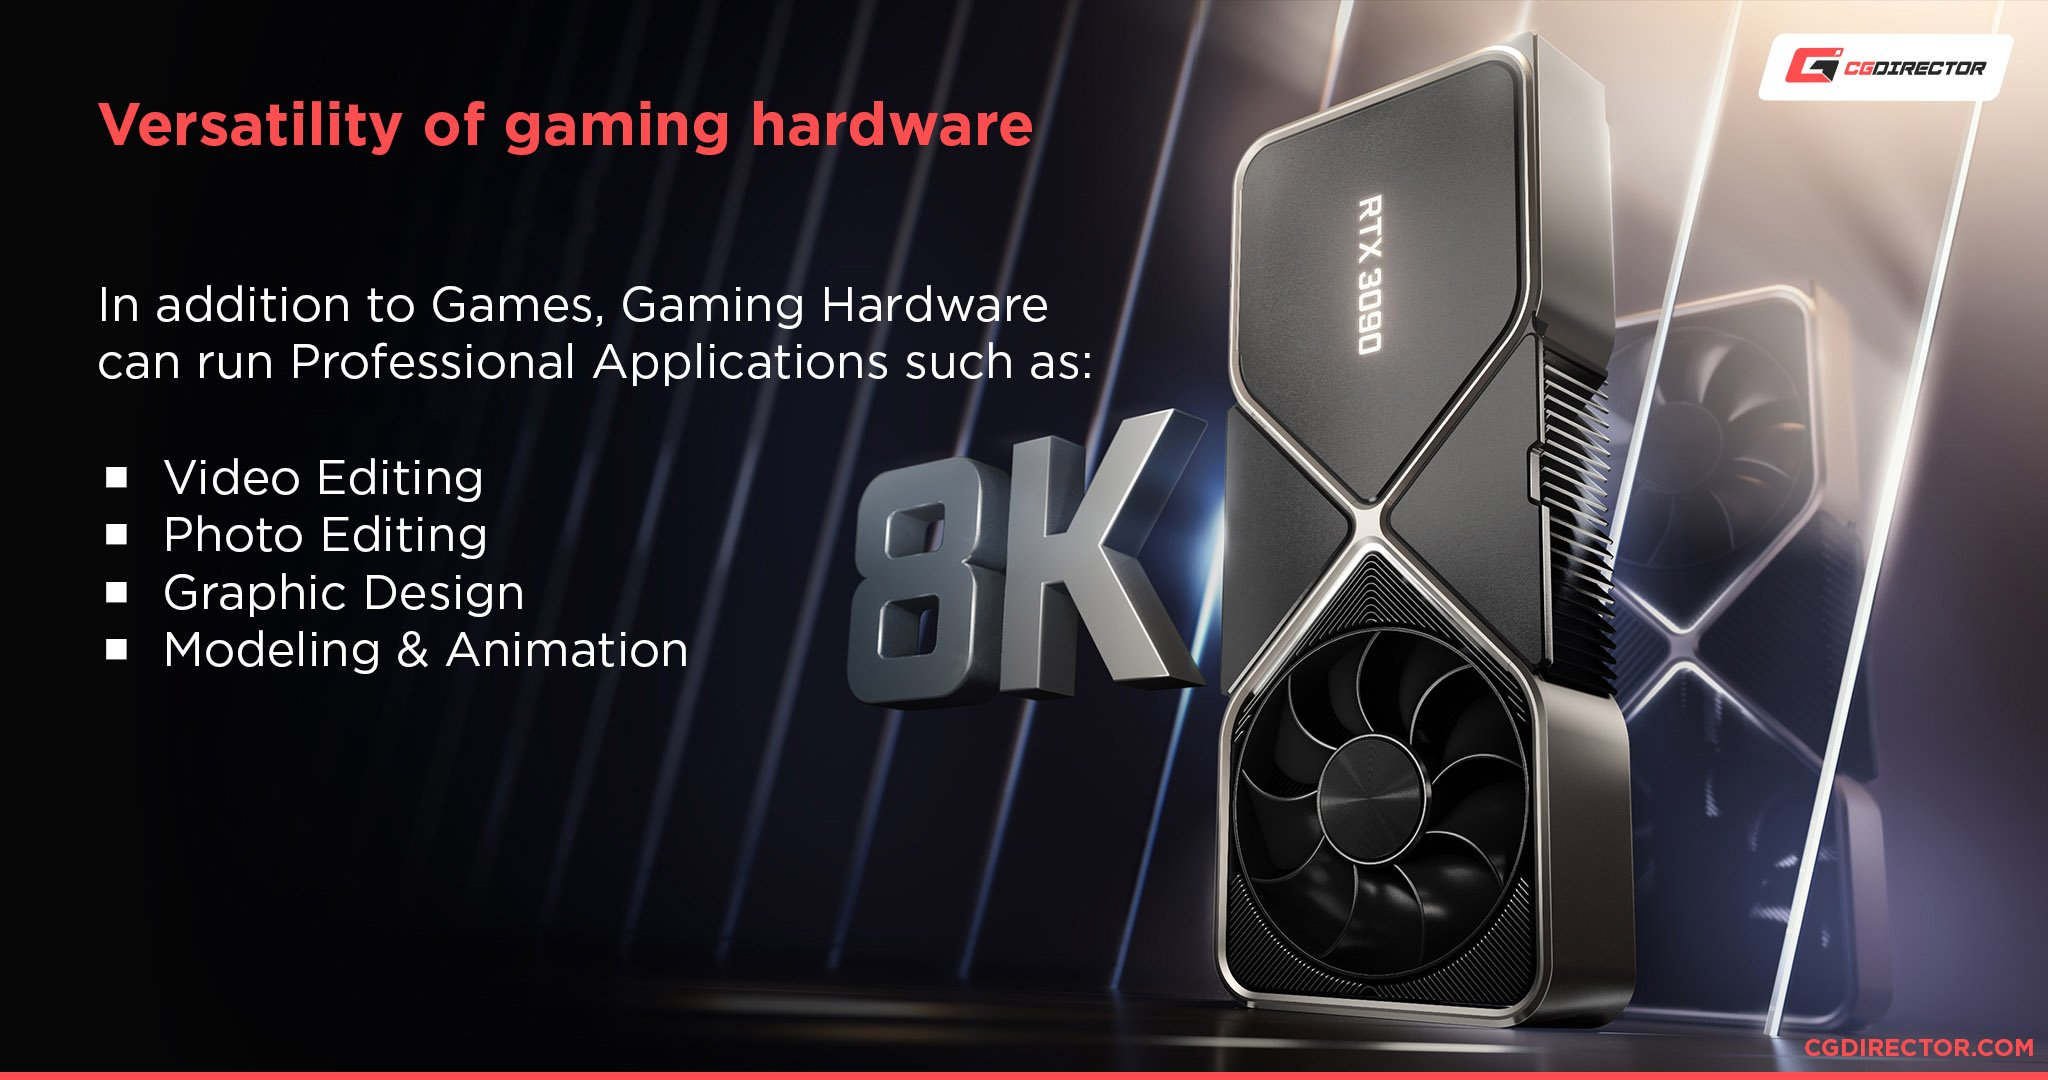 Gaming Hardware can be used for Professional Workloads as well